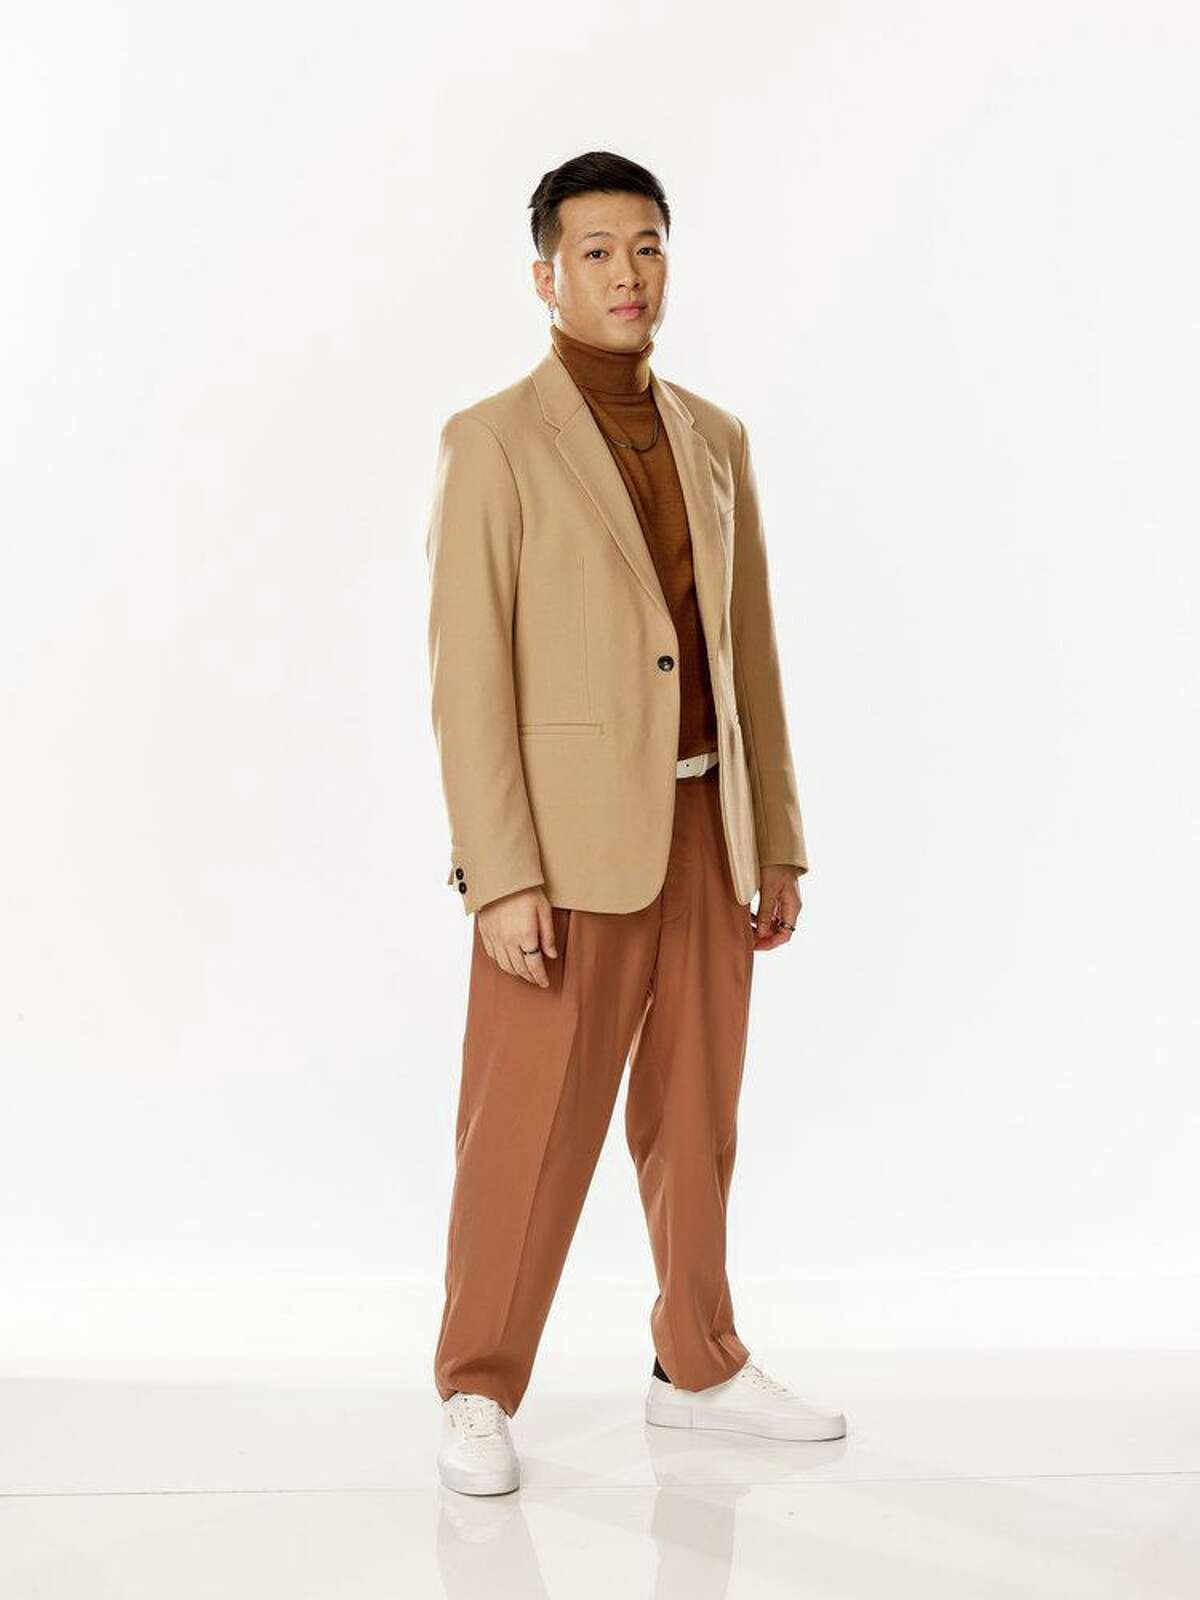 THE VOICE -- Season: 21 -- Contestant Gallery -- Pictured: Vaughn Mugol -- (Photo by: Chris Haston/NBC)